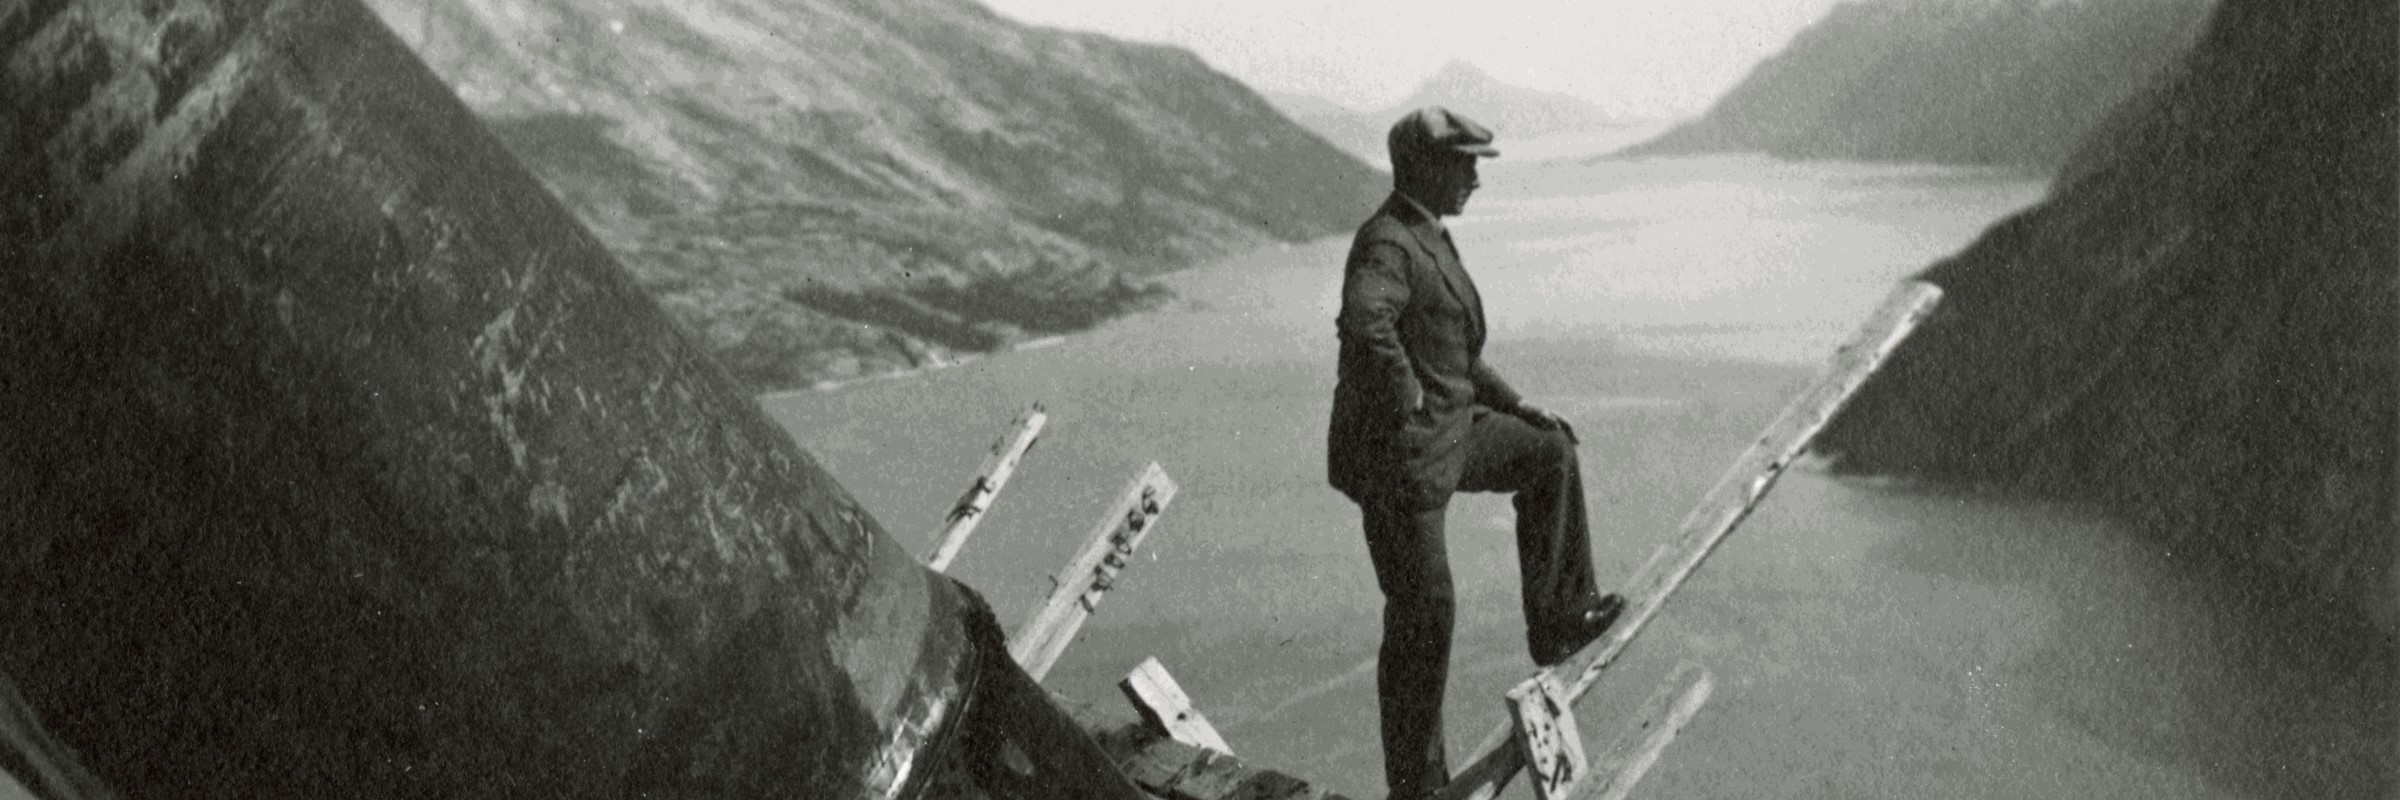 Black and white image of man looking out over a fjord